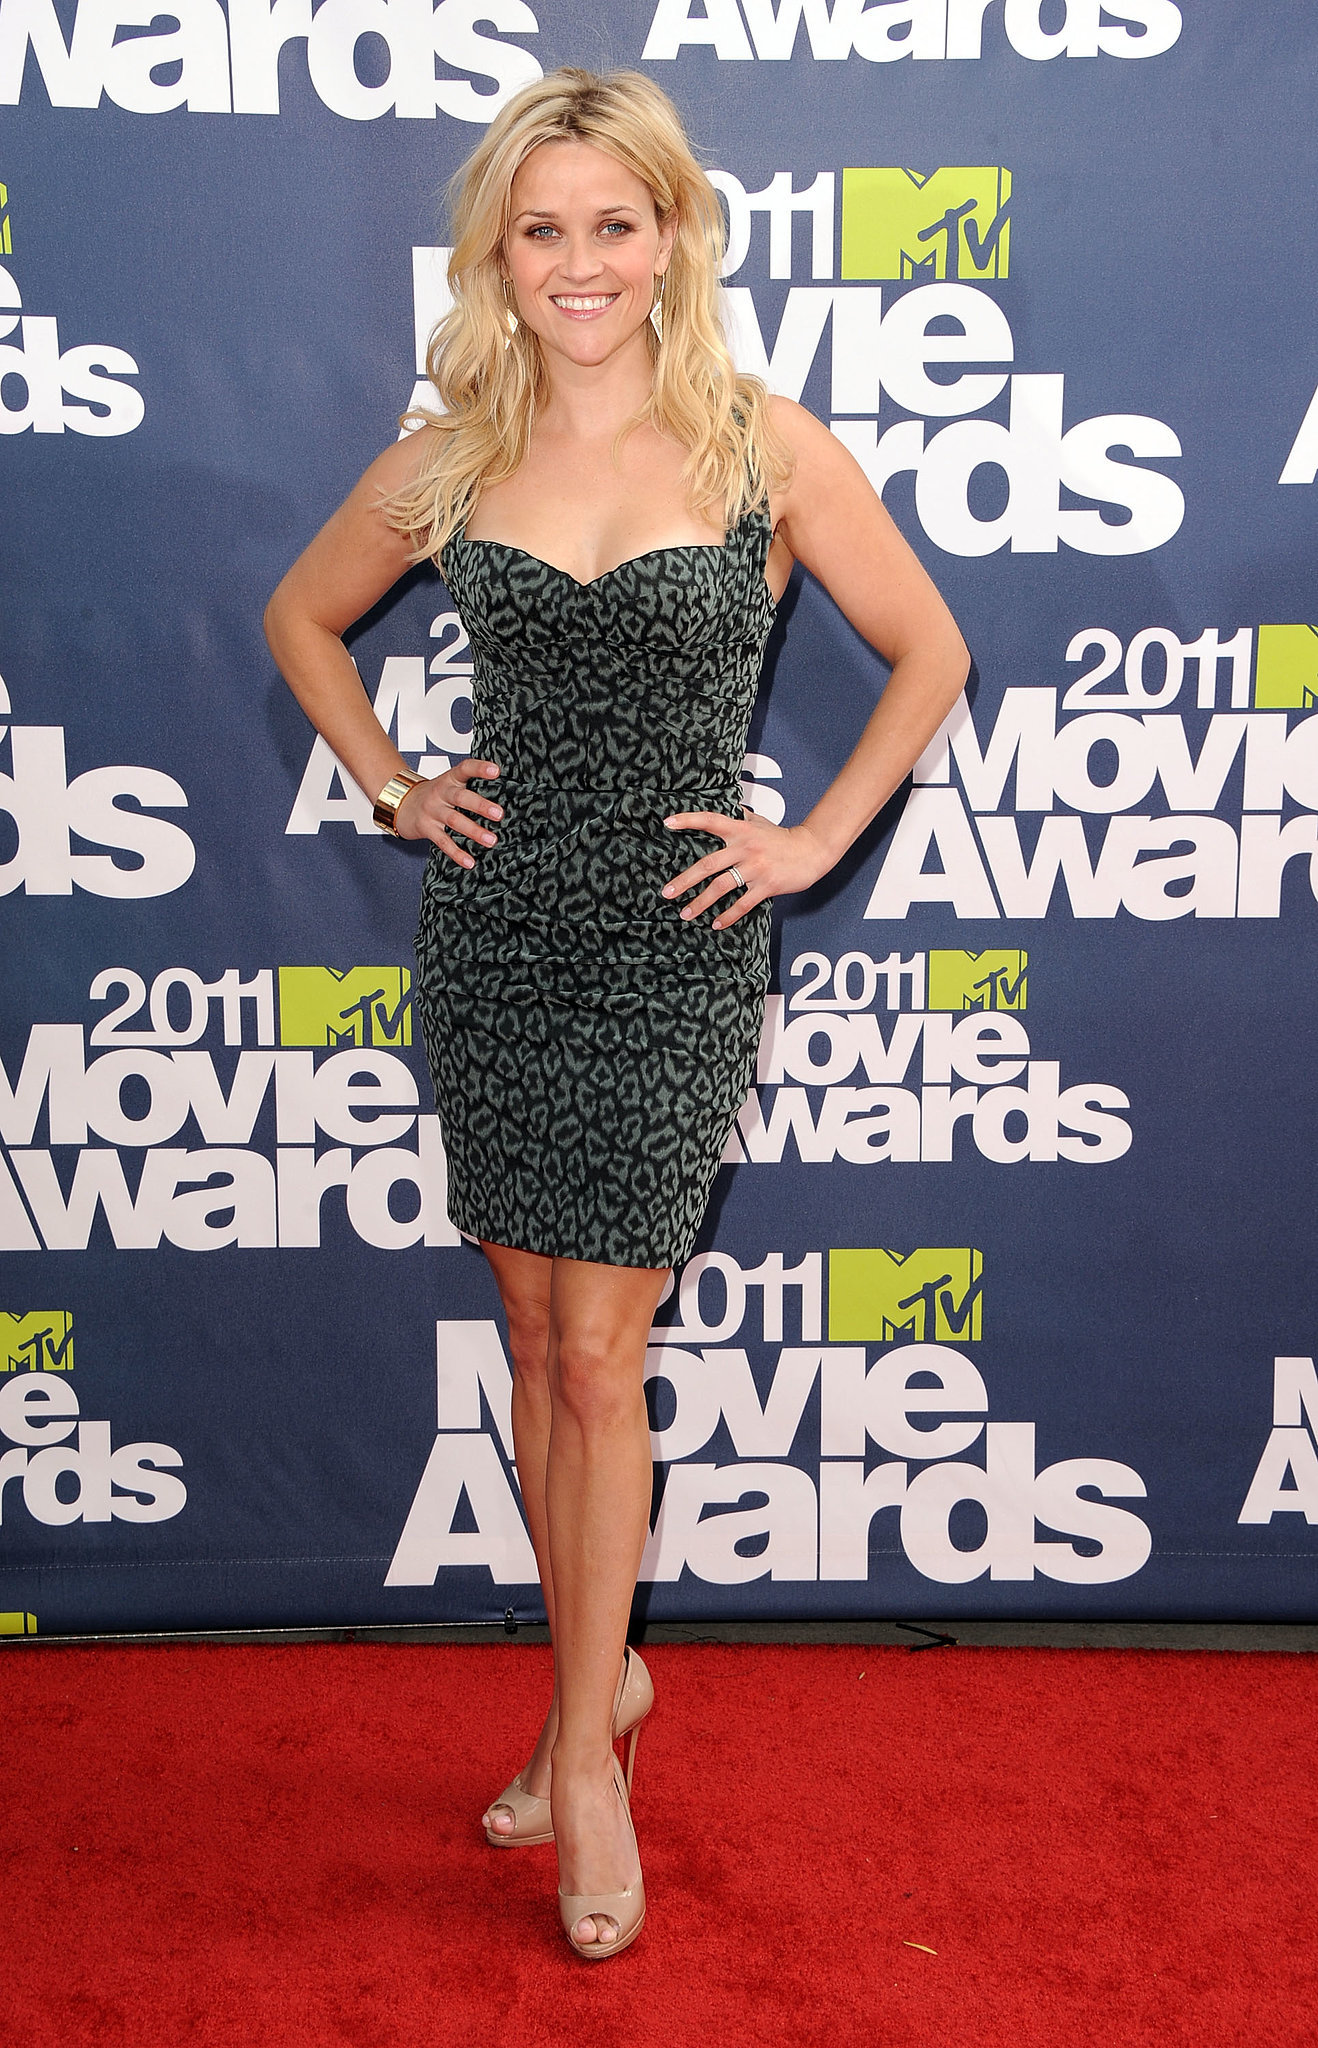 Reese Witherspoon in Zac Posen at 2011 MTV Movie Awards